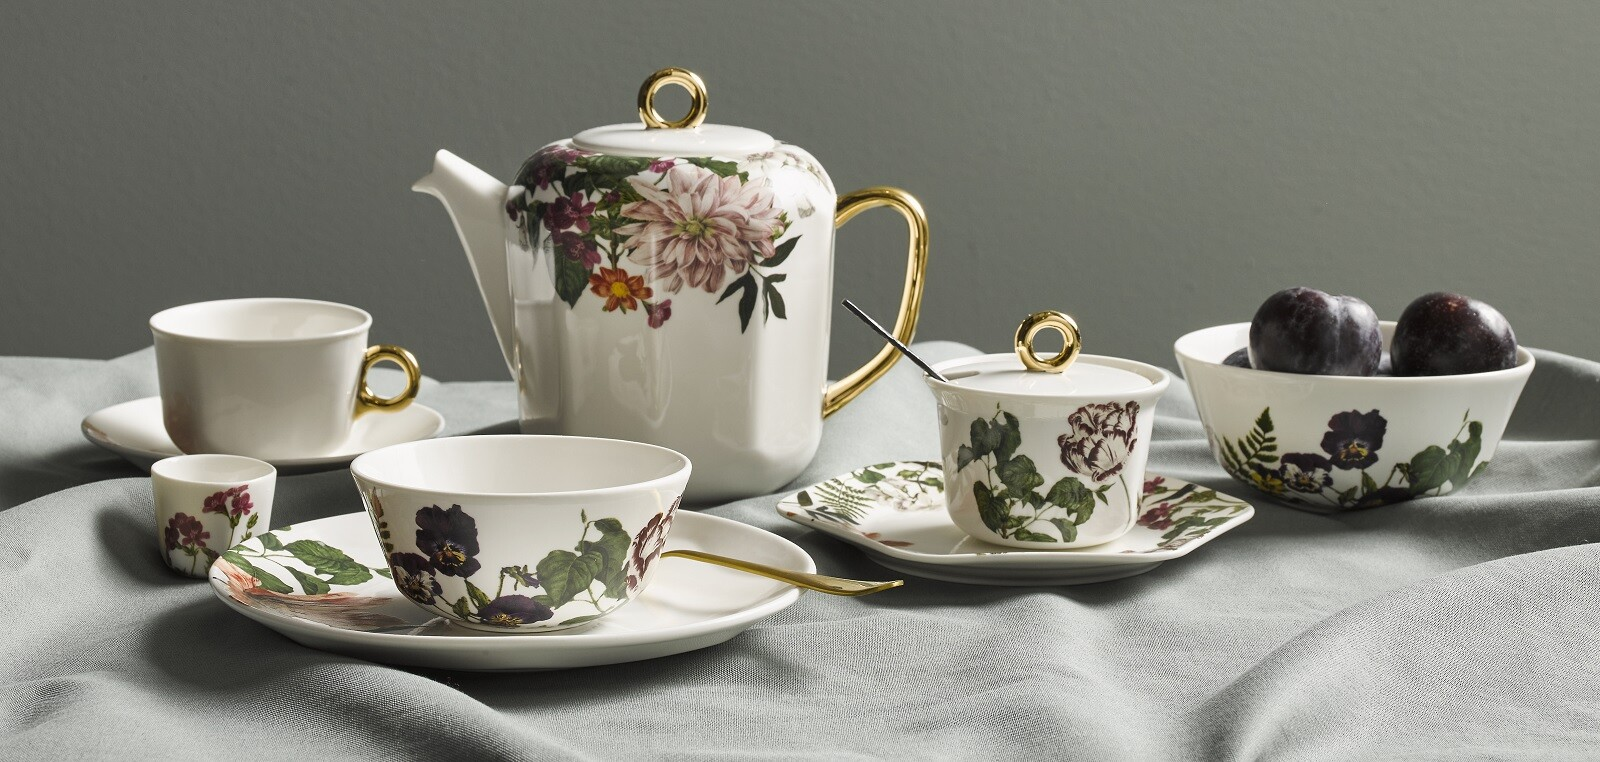 ESSENZA Gallery Porcelain Off white